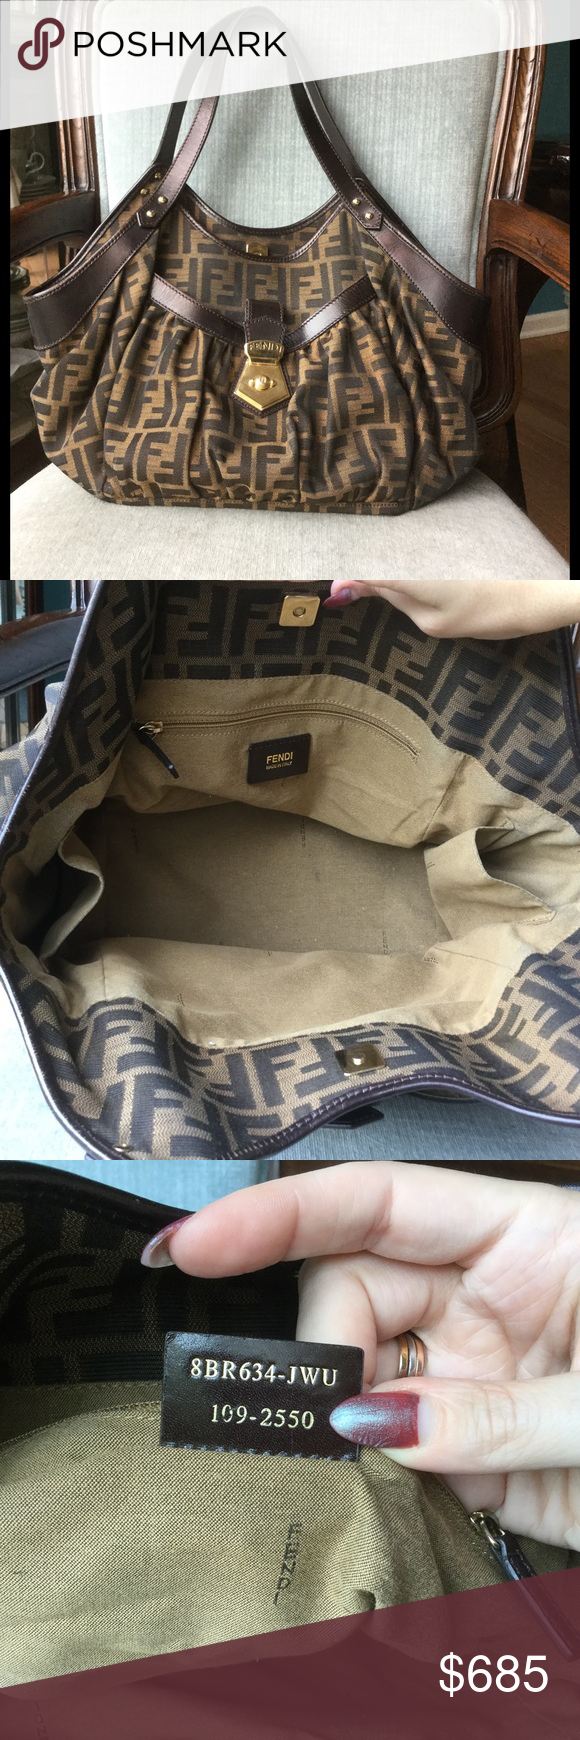 b9a01d668fb6 Fendi Tobacco Zucca Canvas Borsa Chef Tote large Like new condition.  Beautiful canvas and leather